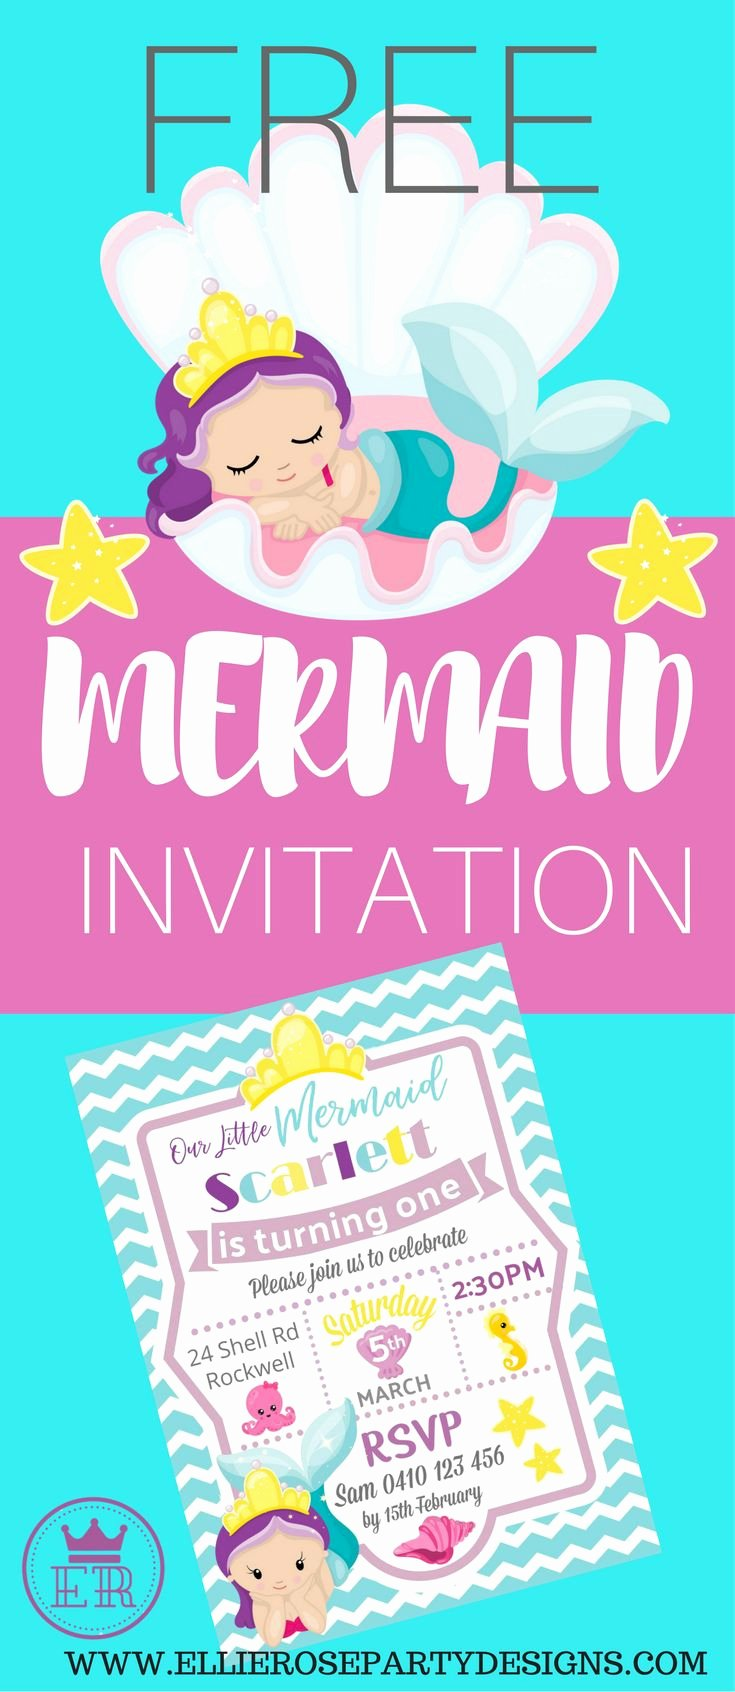 Mermaid Birthday Invitation Templates Elegant Best 25 Mermaid Party Invitations Ideas On Pinterest